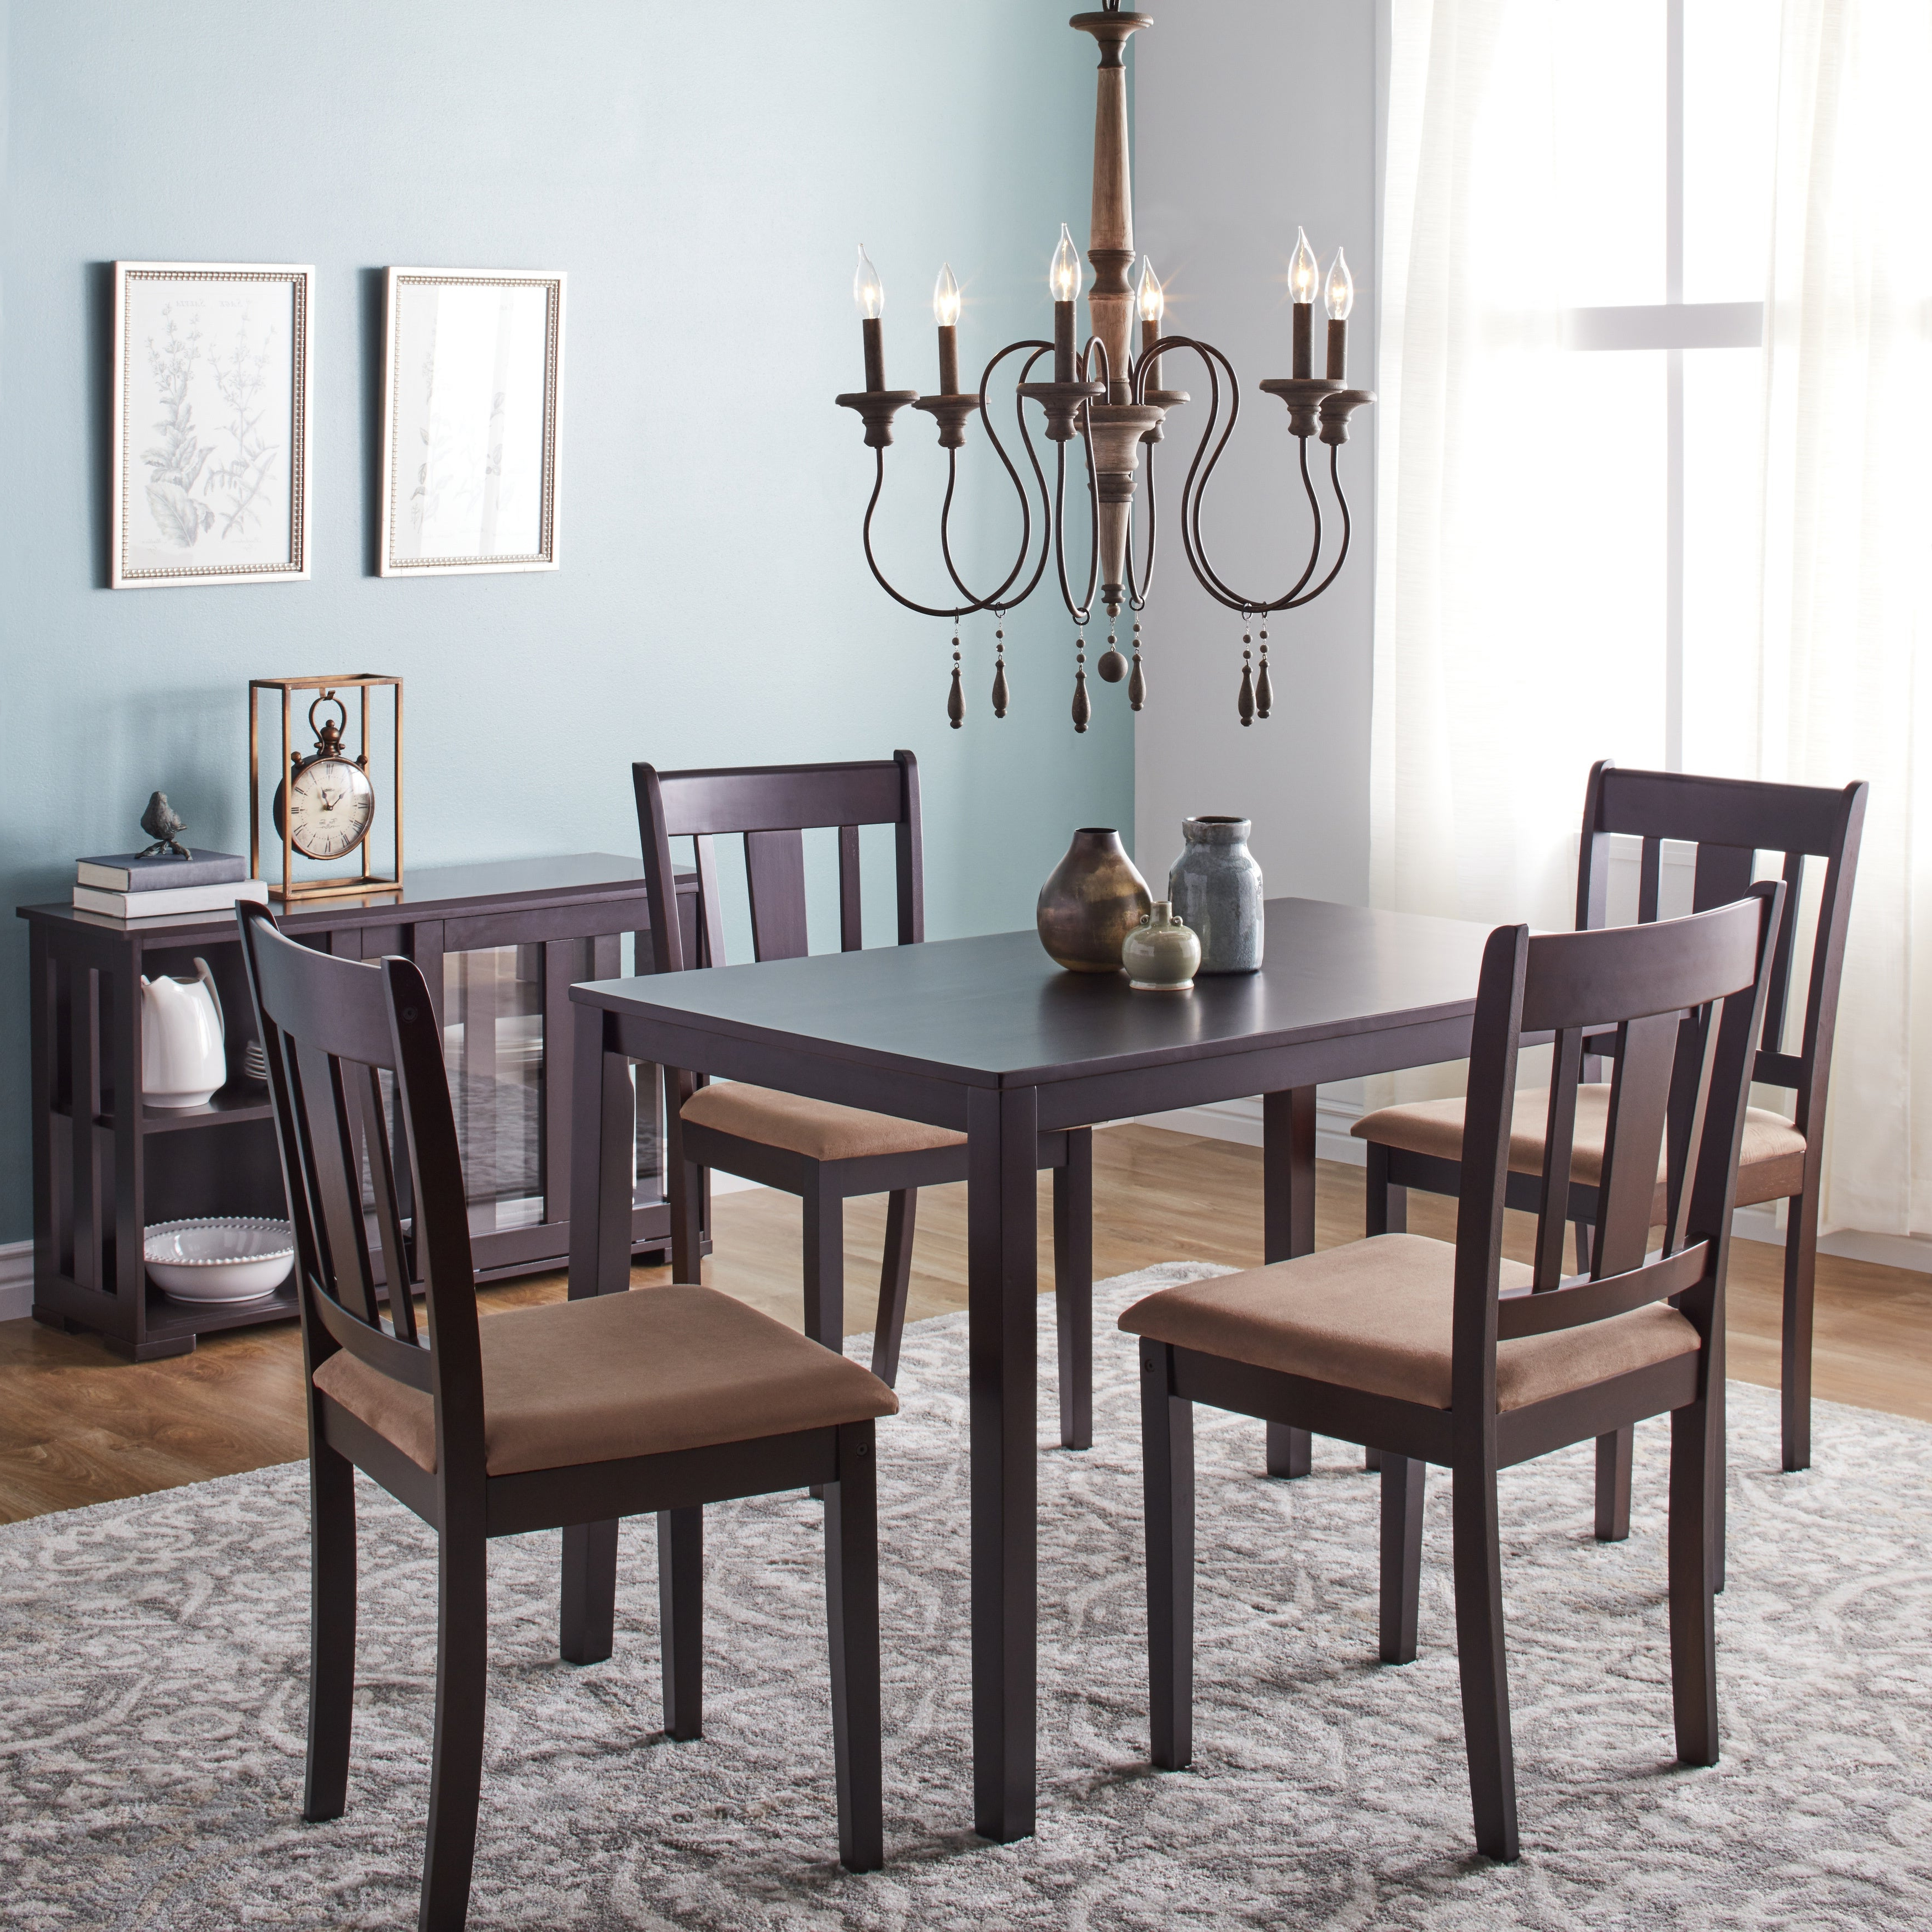 West Hill Family Table 3 Piece Dining Sets For Popular Buy 5 Piece Sets Kitchen & Dining Room Sets Online At Overstock (View 8 of 20)